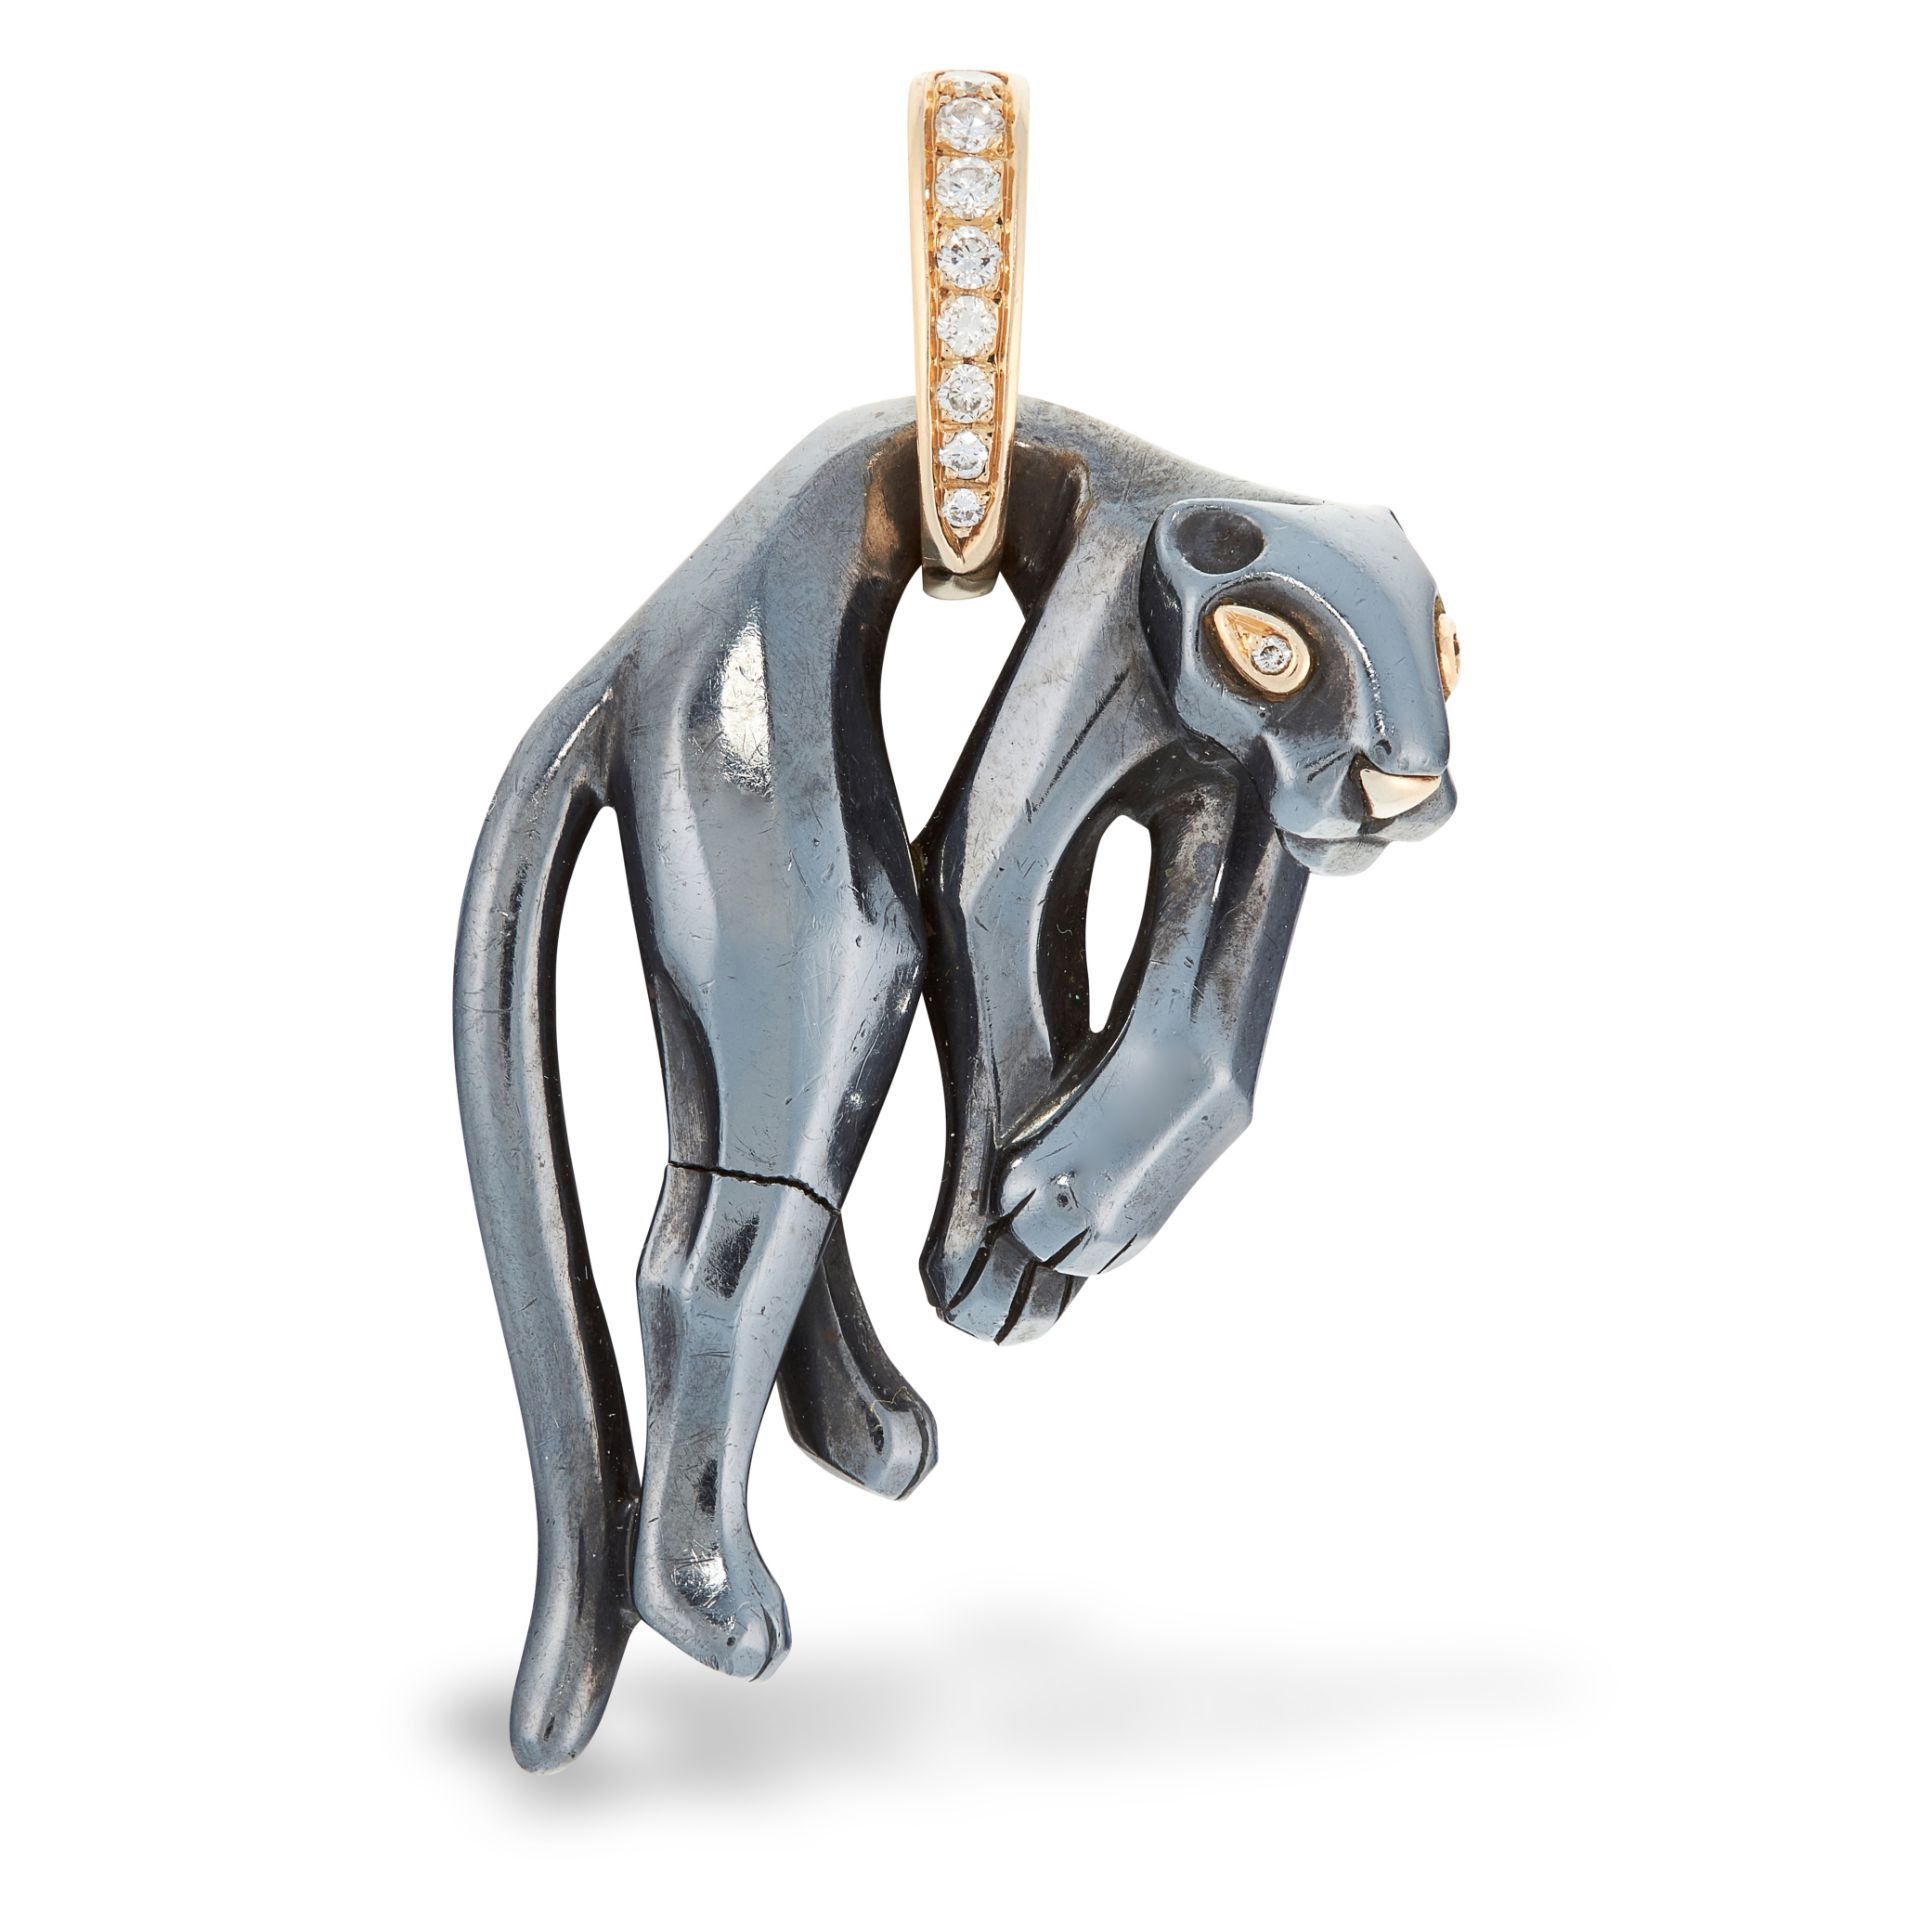 A DIAMOND PANTHERE PENDANT, CARTIER in 18ct yellow gold and silver, designed as a hanging panther